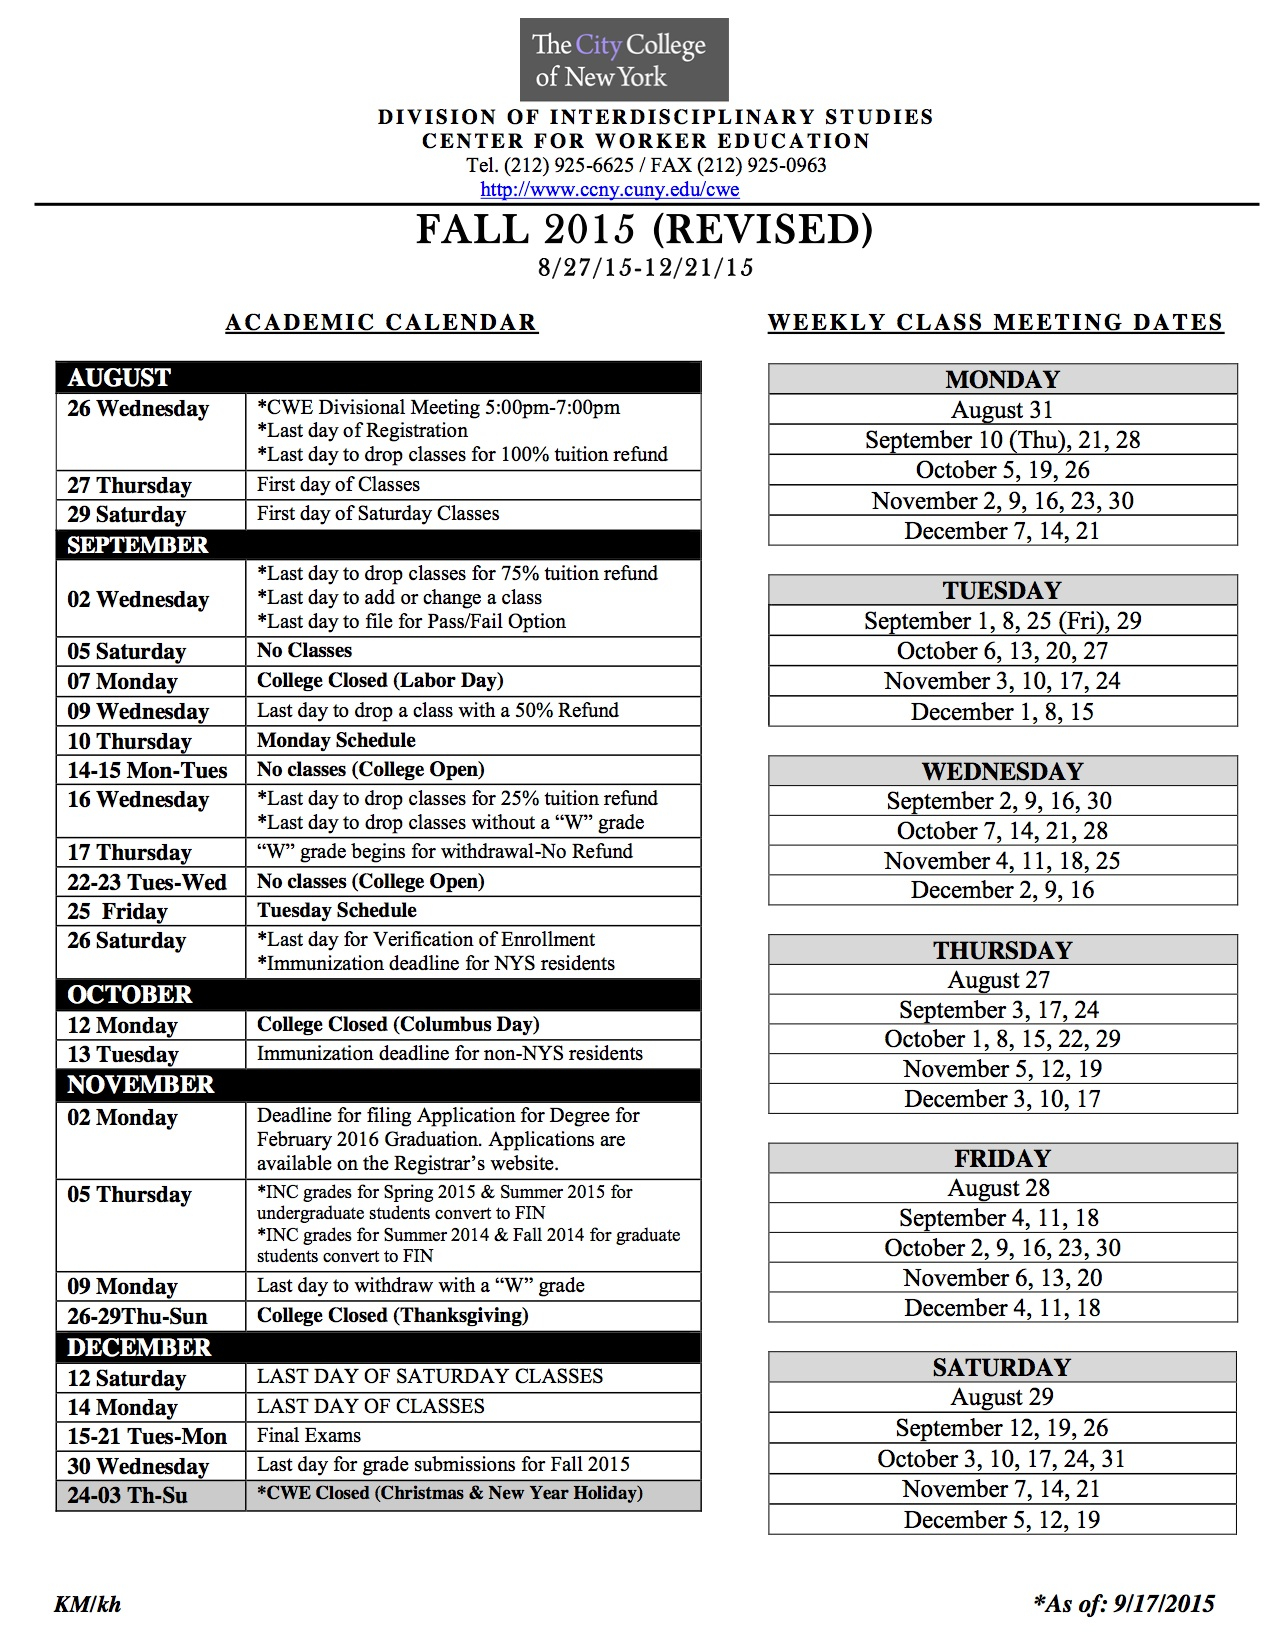 Academic Calendar | The City College Of New York Regarding Queensborough Community College Academic Calendar